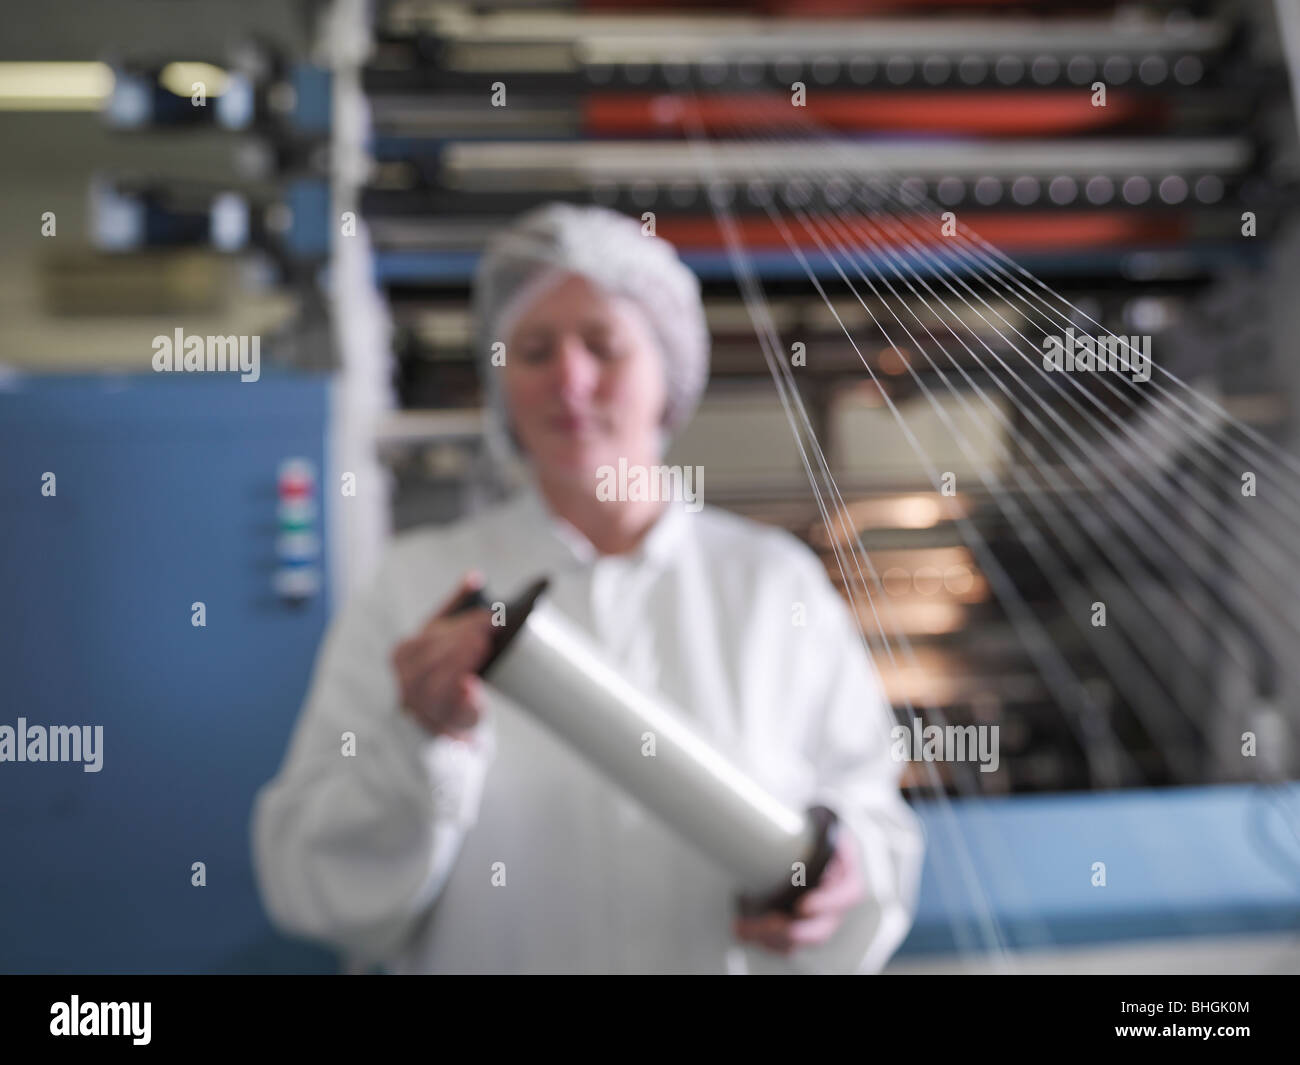 Technician Weaving Medical Product - Stock Image